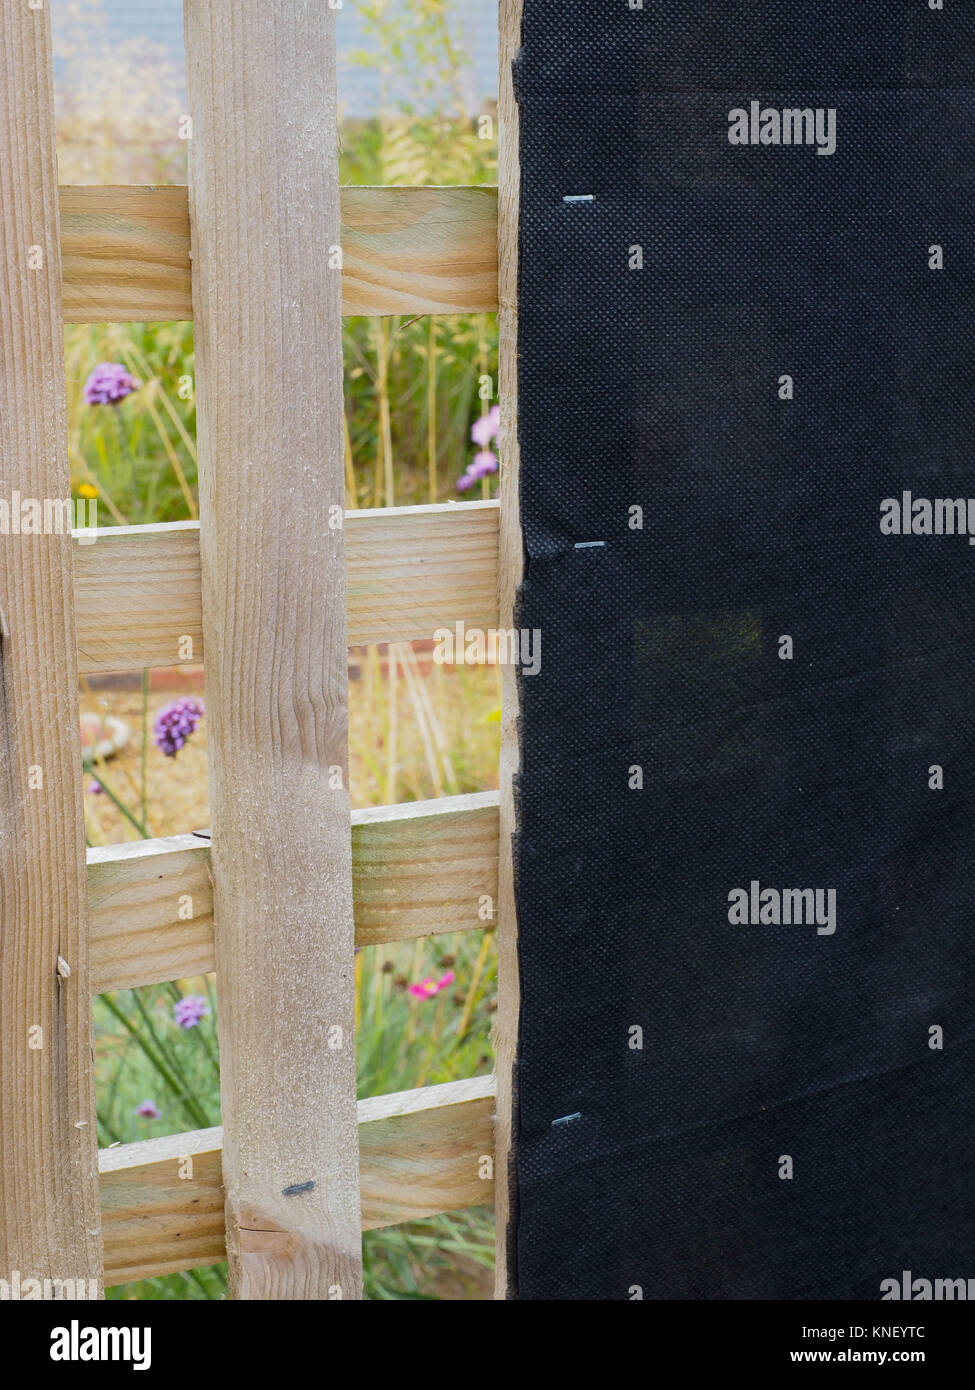 OPEN GARDEN TRELLIS WITH BLACK FABRIC STAPLED TO INSIDE THUS SHIELDING VIEW OF OIL TANK SITUATED IN REAR GARDEN Stock Photo